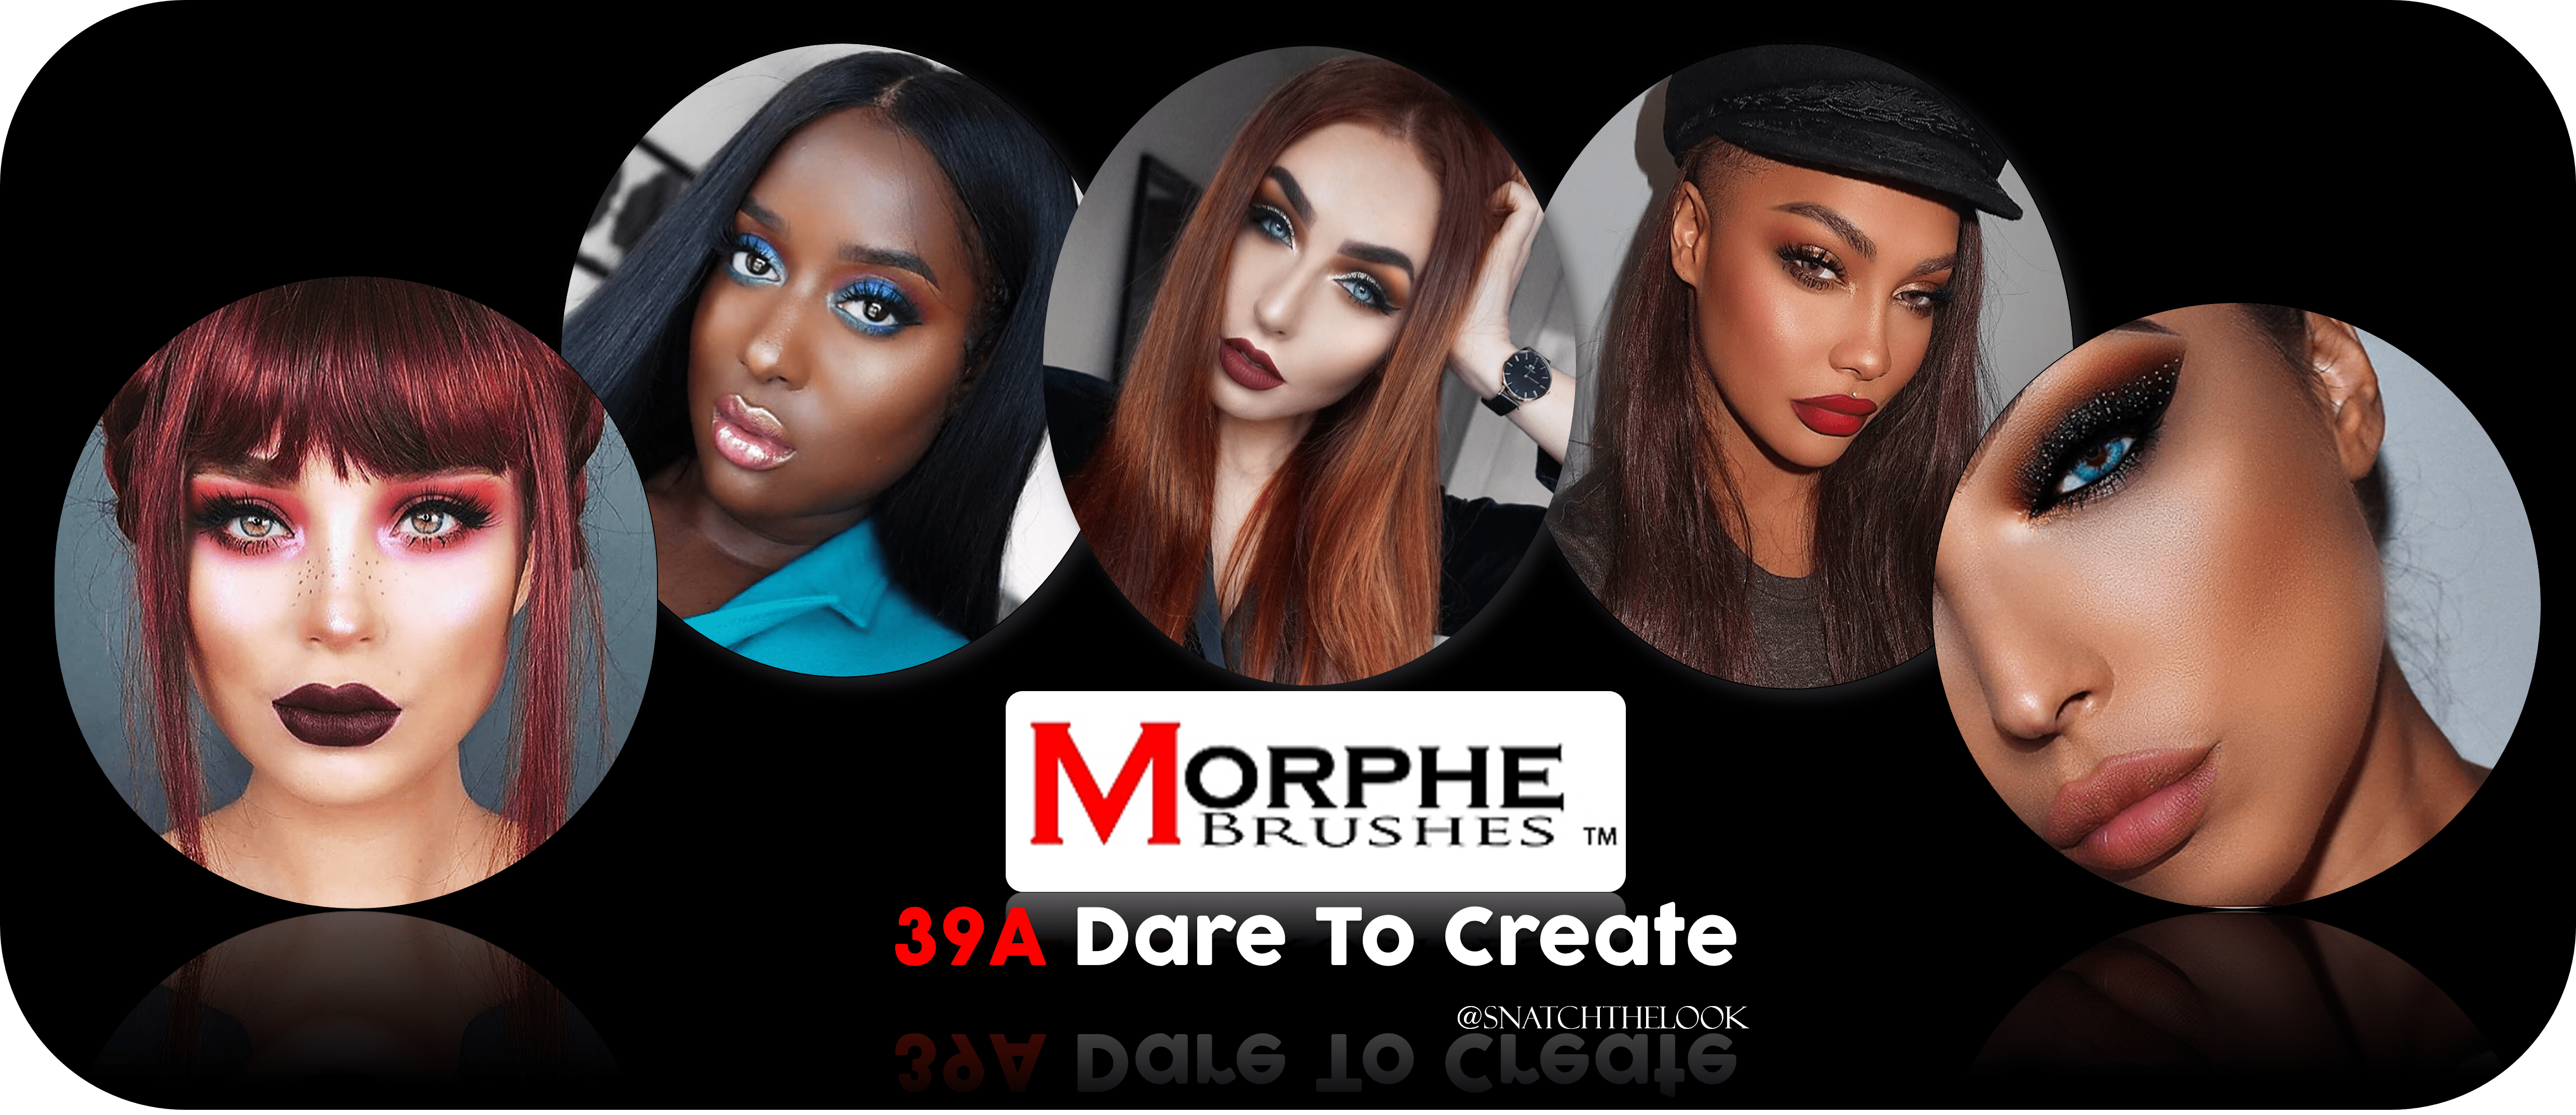 Morphe Brushes 39A Dare to Create Eyeshadow Palette